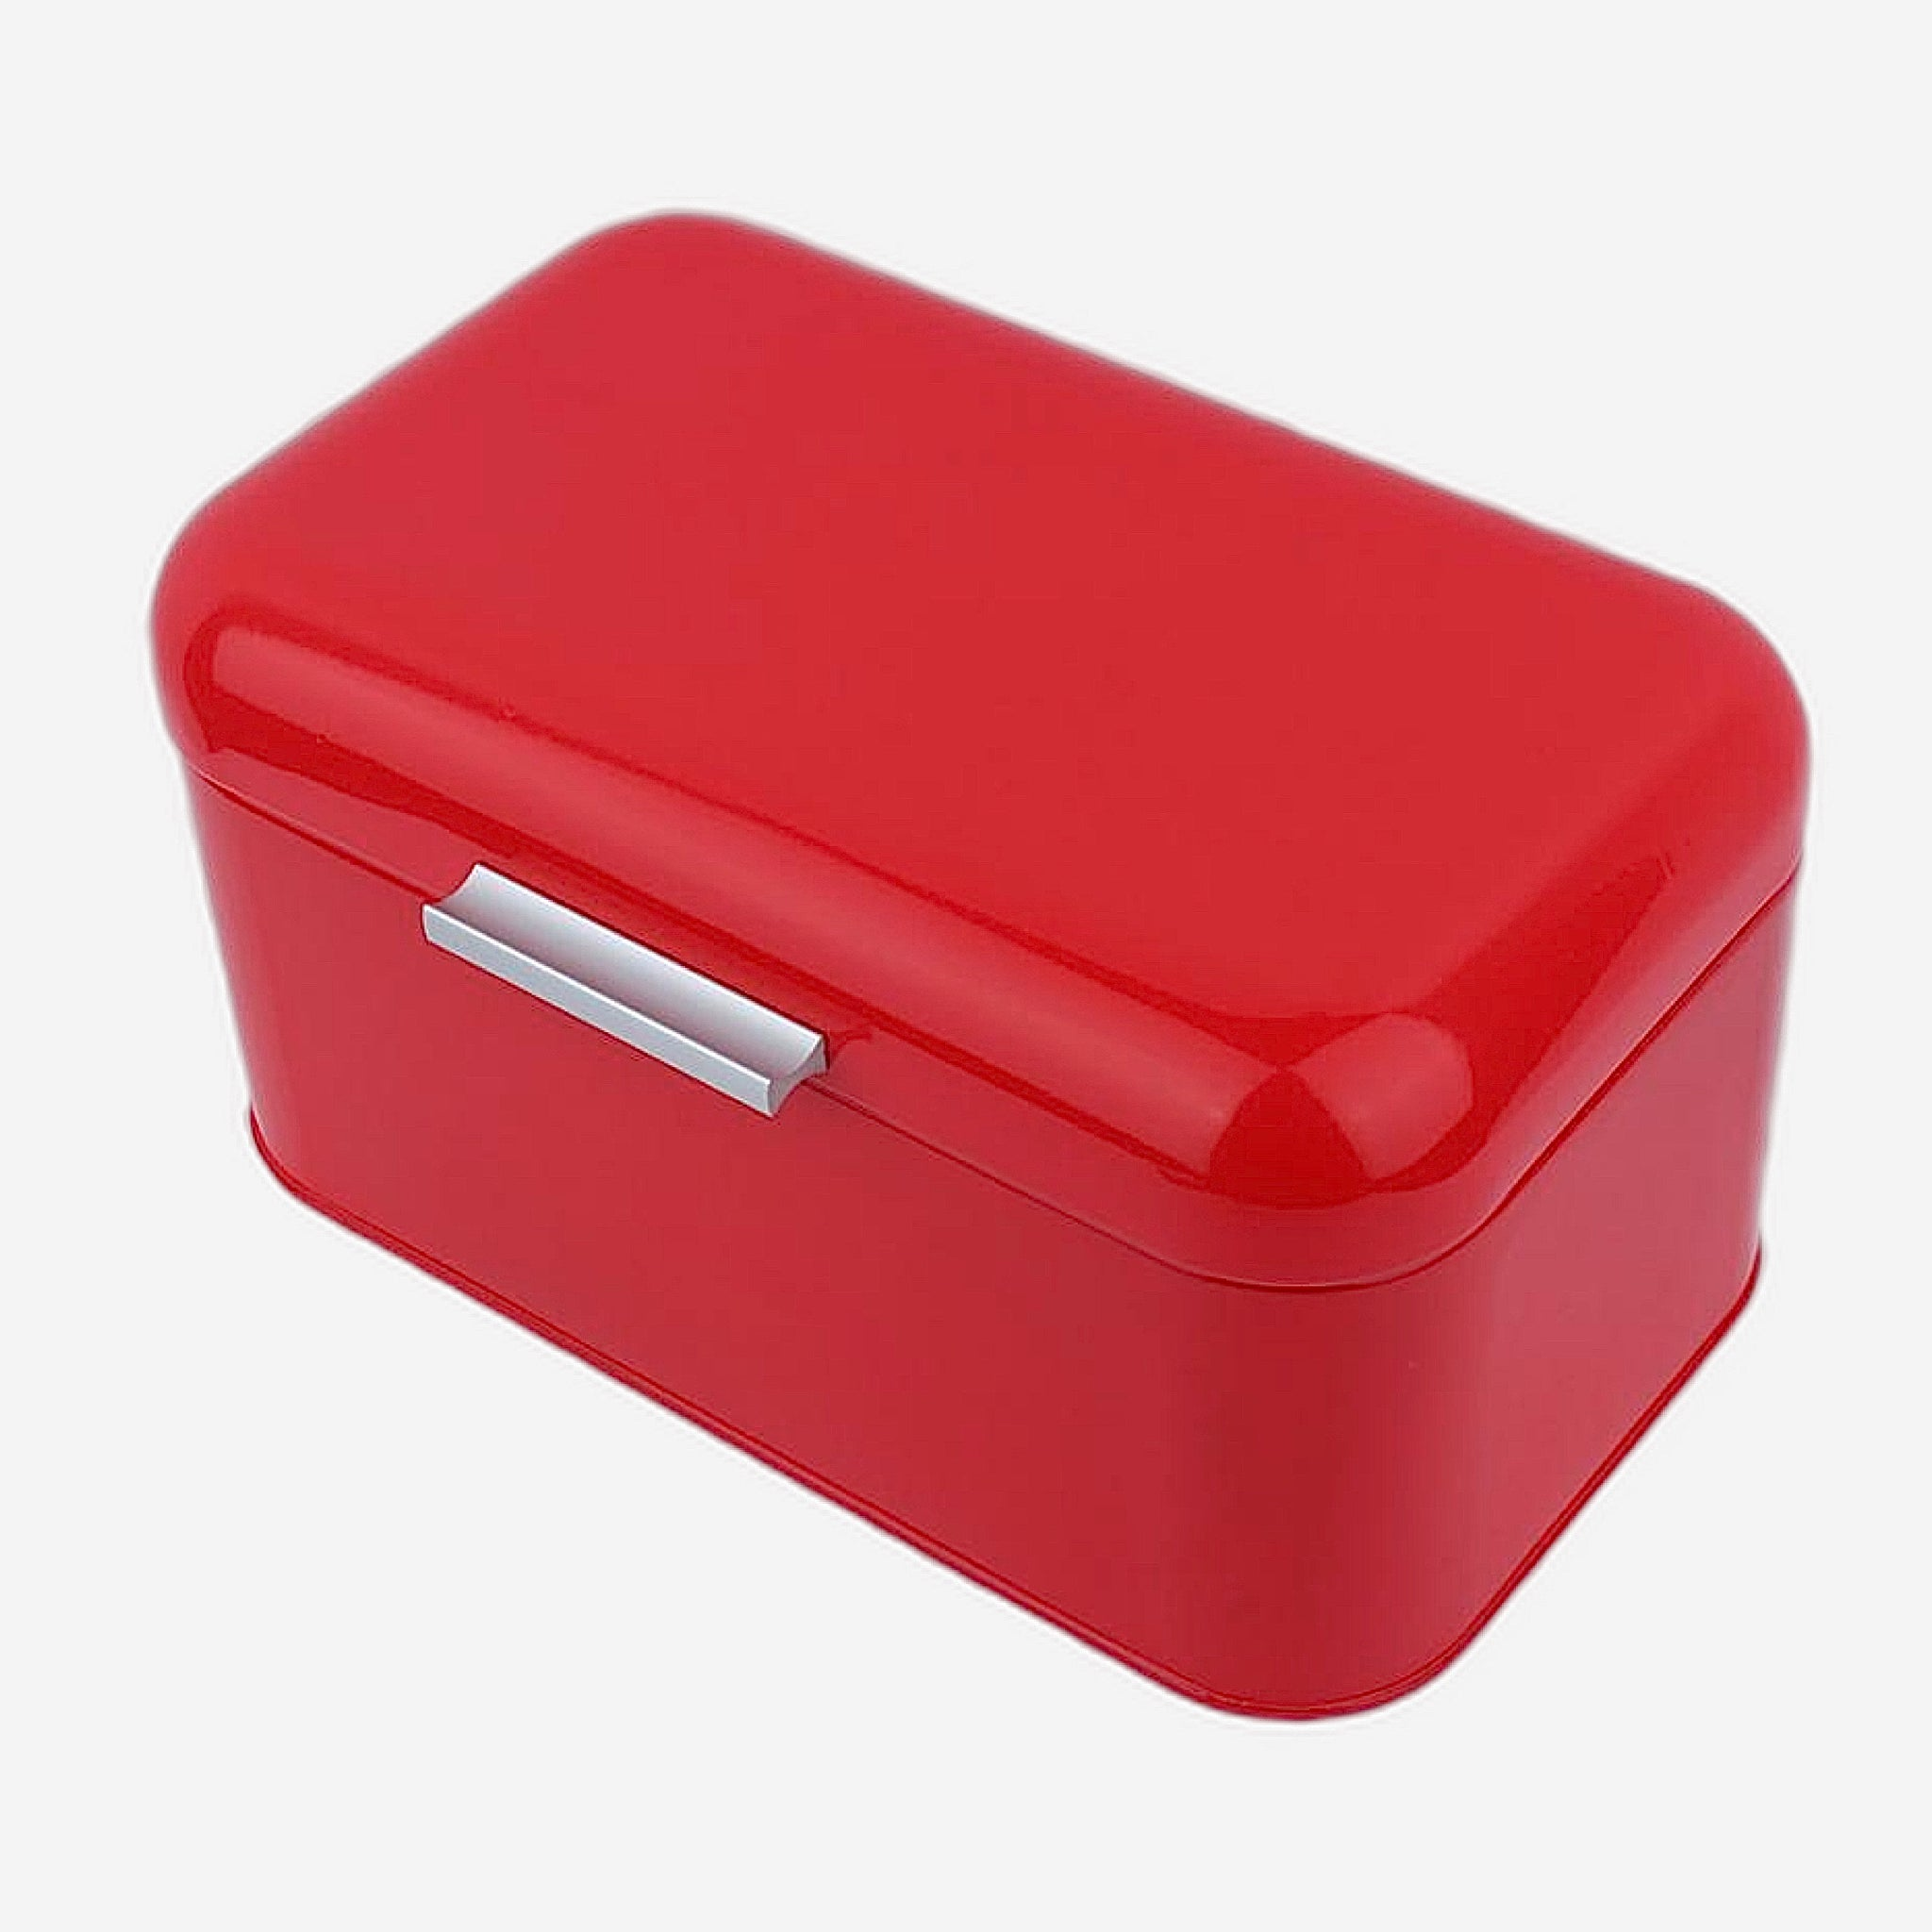 Retro Red Metal Bread Box Bread Storage Organizer Boxes Solid Color Large Capacity Bin Kitchen Storage Container Trend